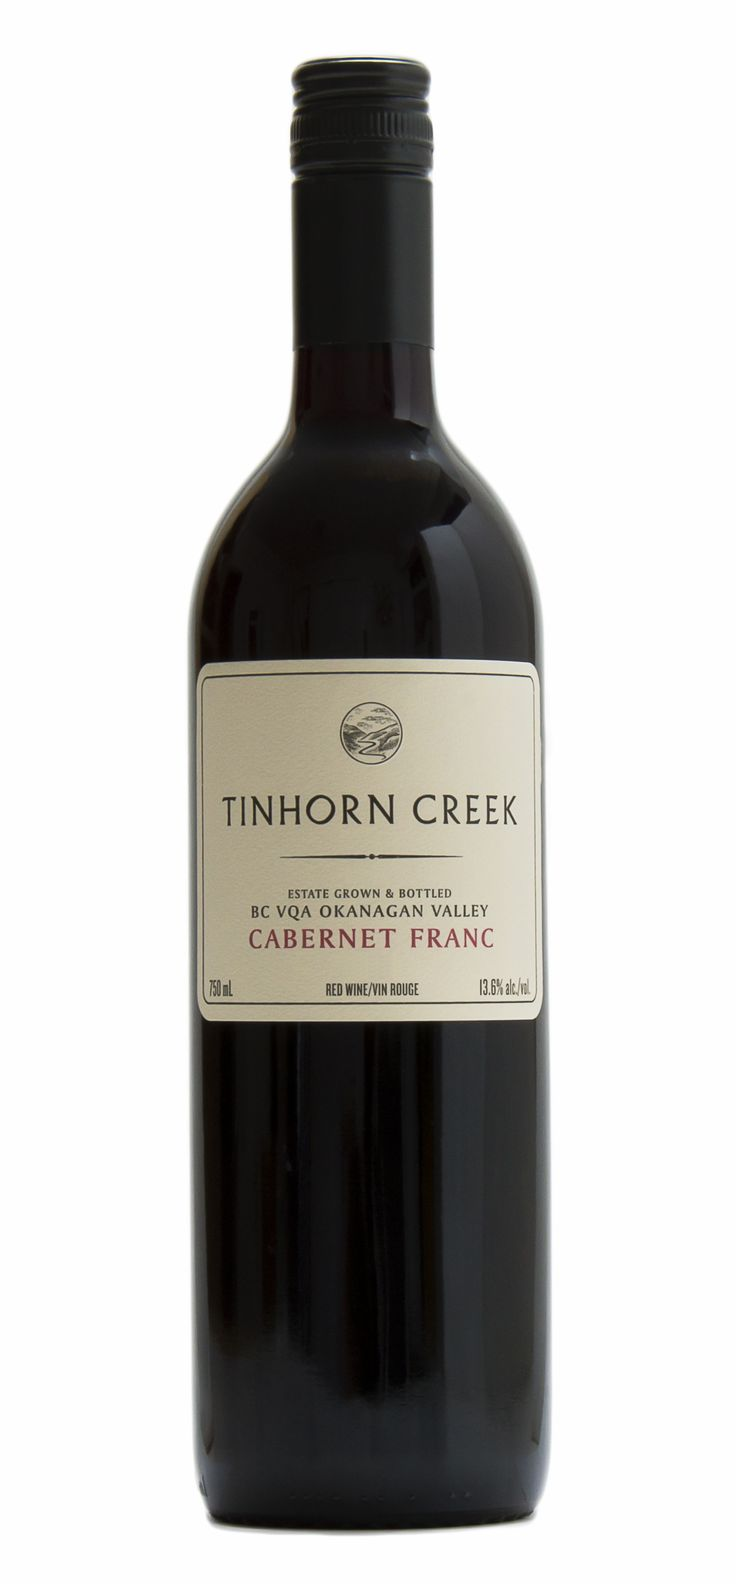 Tinhorn Creek Cabernet Franc. Tasting Notes: The nose has blackberries and licorice up front, softens to yield stewed cherries and a touch of orange peel. Palate is surprisingly plush and soft for a young Cabernet. It has layers of red fruit and spice with typical Okanagan bright acidity that gives it plenty of life and length. Finish is persistent with a warm cherry and vanilla flavour and supple tannins.